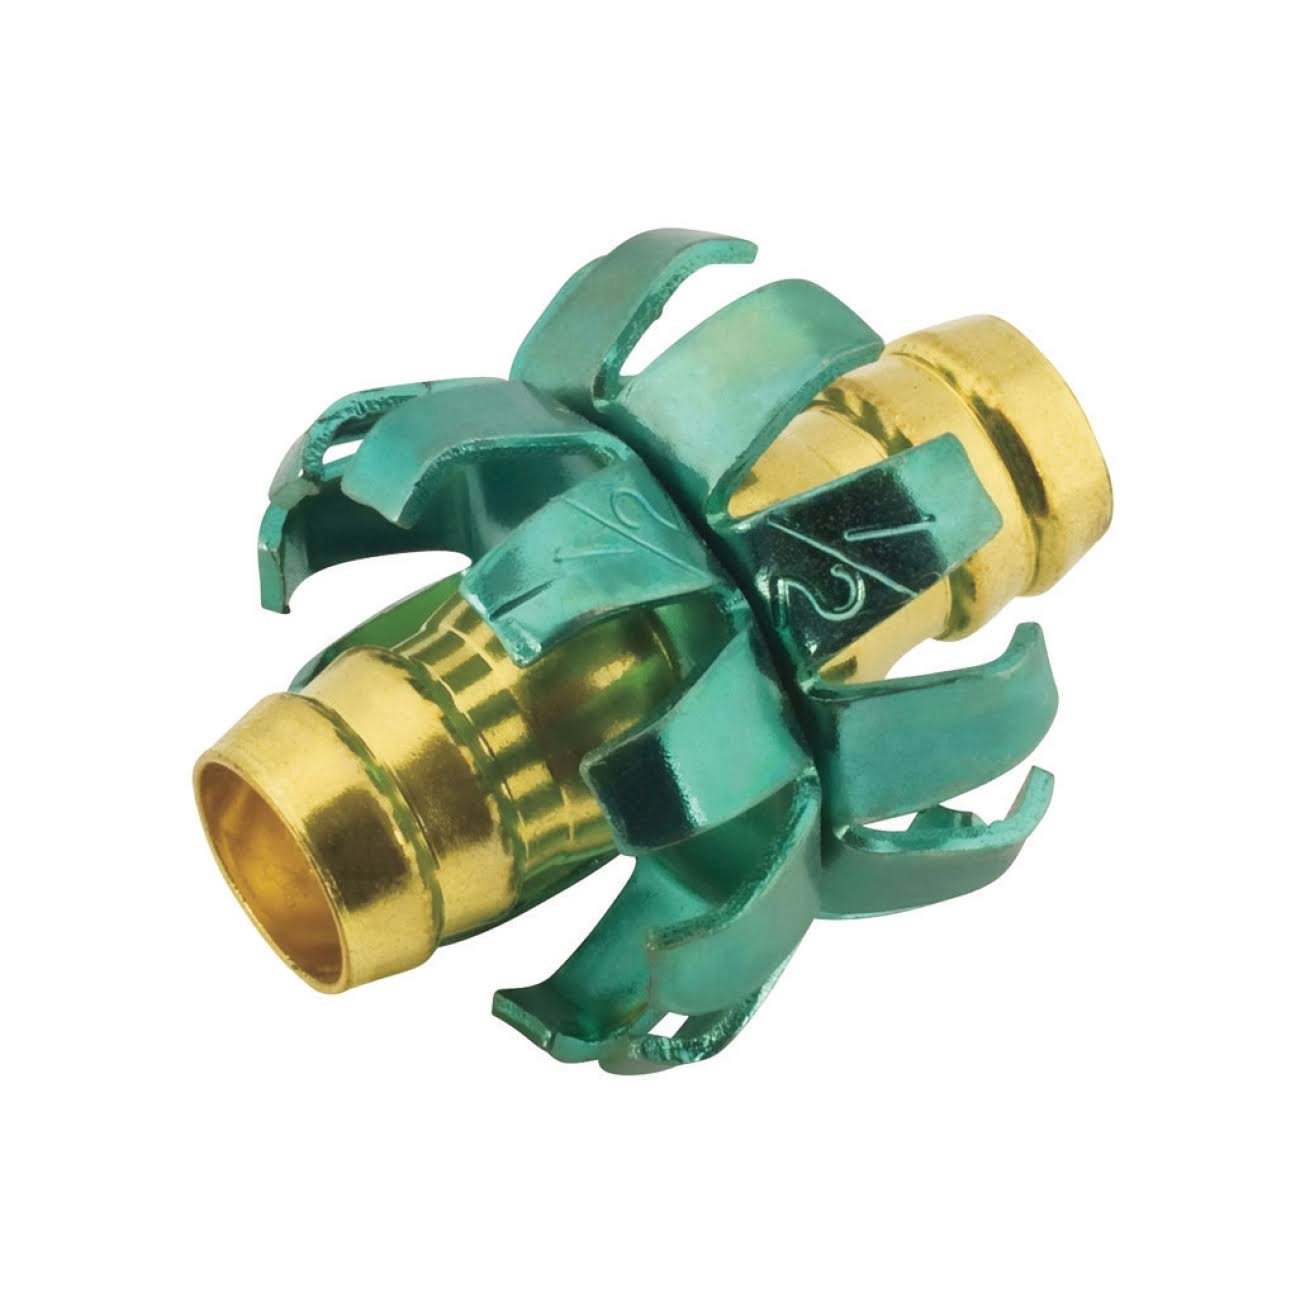 Ace 70299 Mender Hose Repair Coupler - Brass, 1/2""